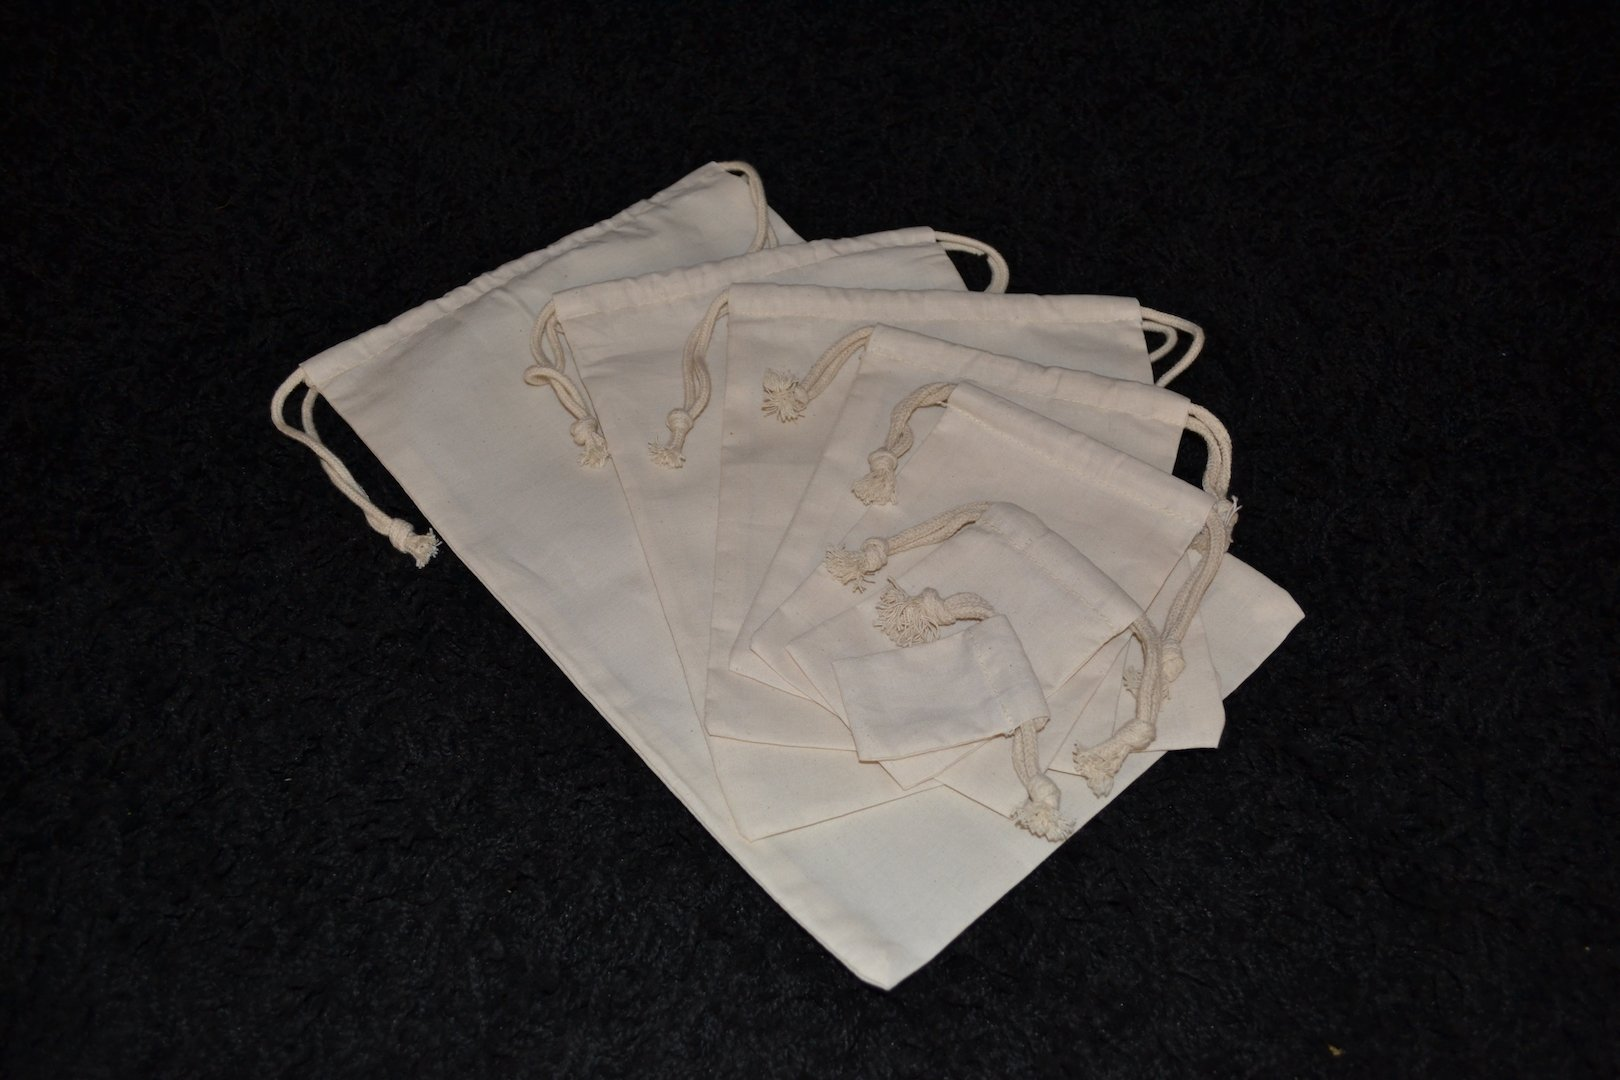 Biglotbags 100 Pieces of 12 x 16 Inches Cotton Muslin Bags, 100% Organic Cotton, Double Drawstring Style, Premium Quality by BigLotBags (Image #5)